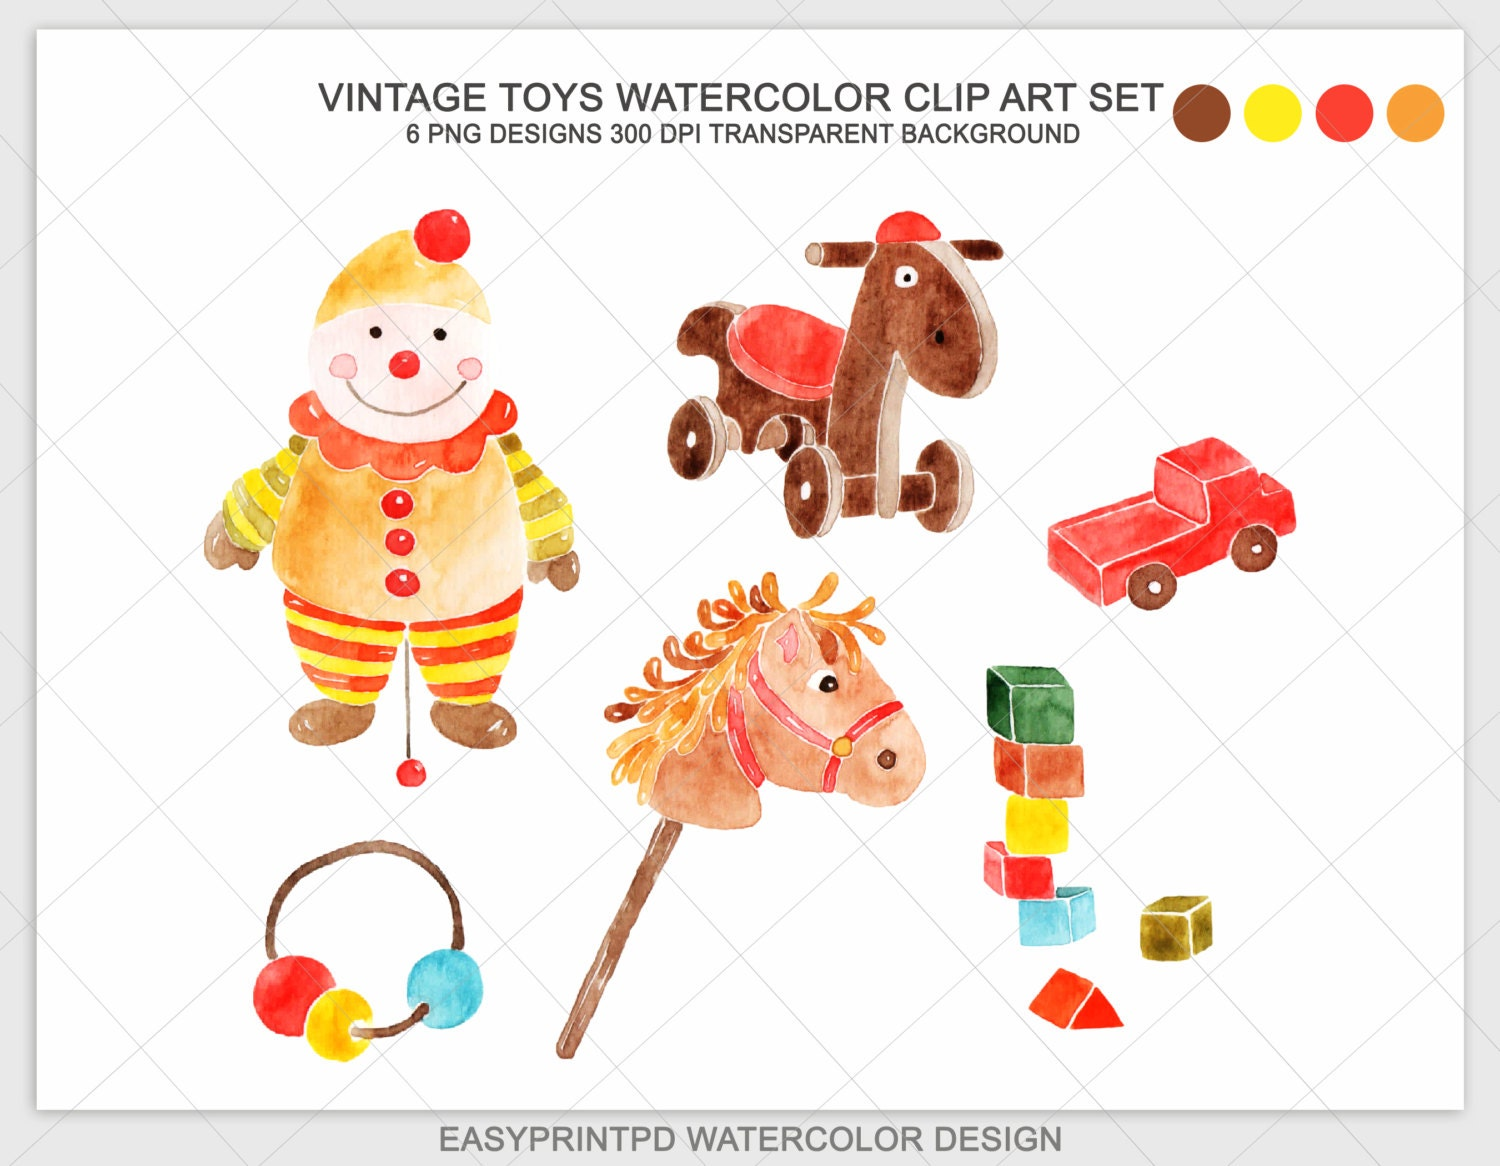 Christmas Toys Clip Art : Watercolor hand painted vintage toys clipart christmas